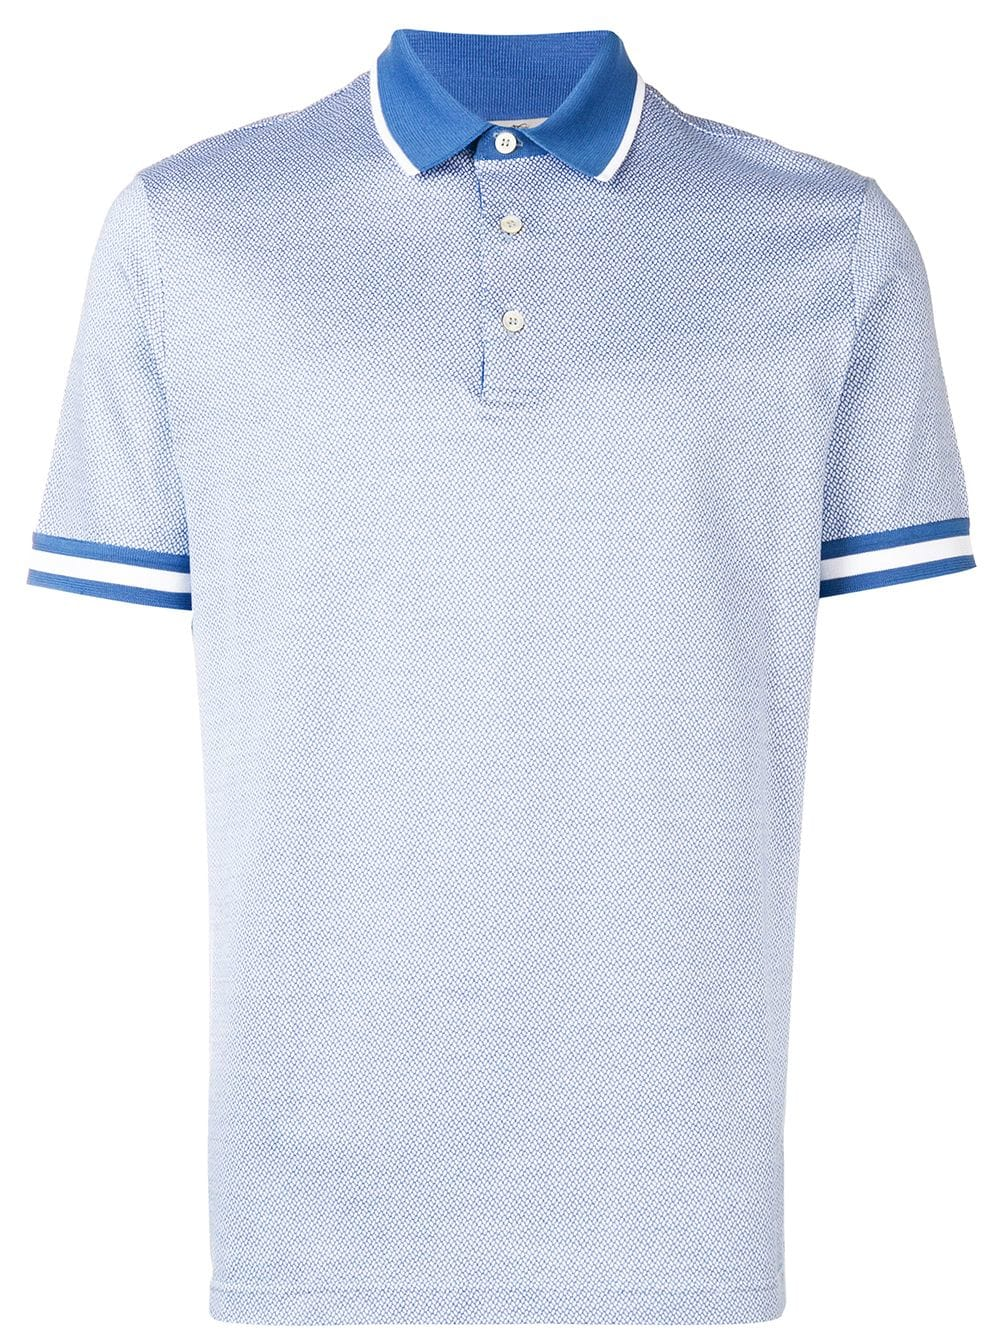 82 Of The Most Creative T Shirt Designs Ever: Canali Striped Trim Polo Shirt In Blue